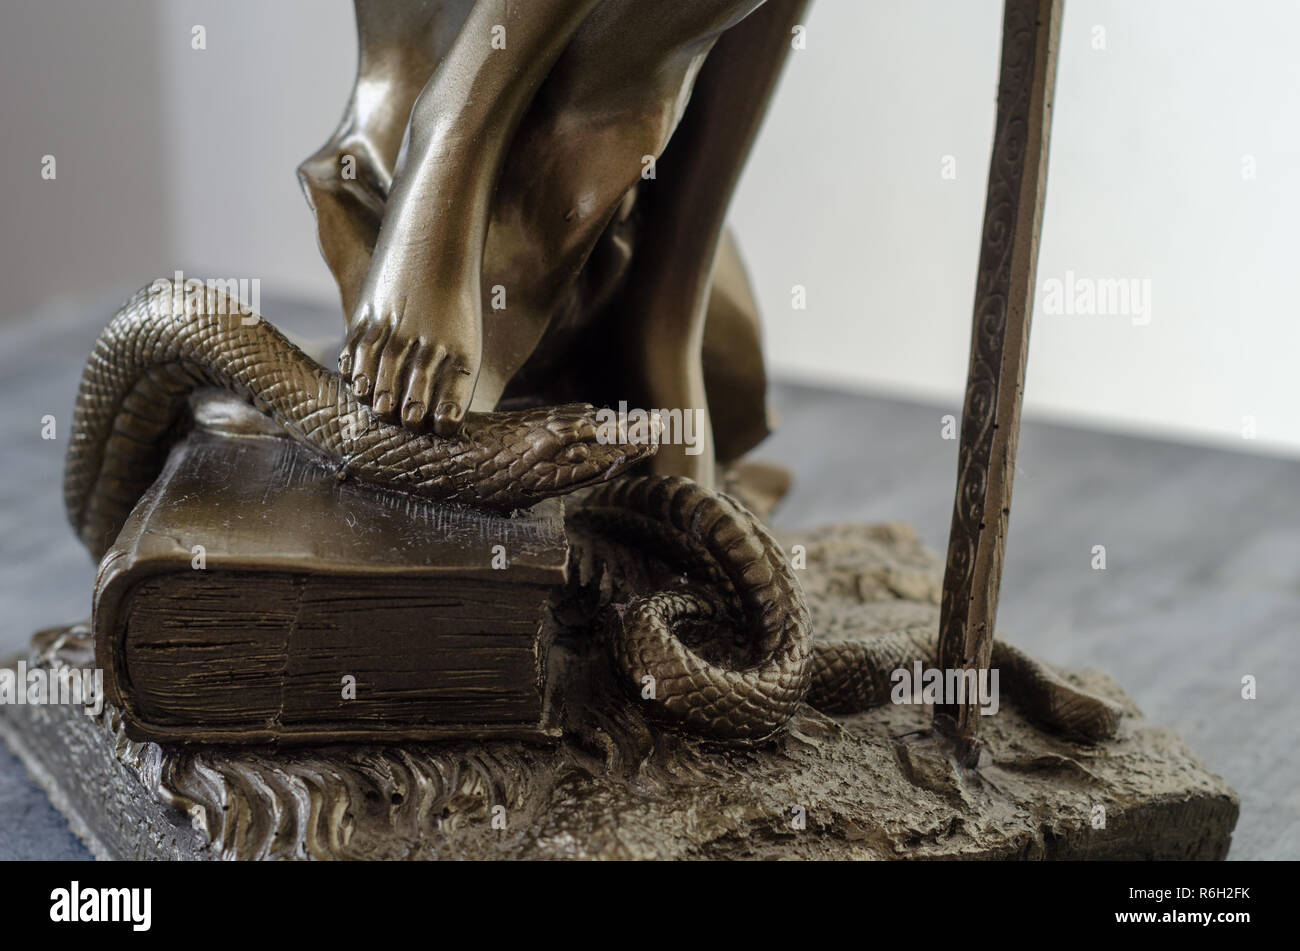 Statue of Themis - goddess of justice.detail. - Stock Image